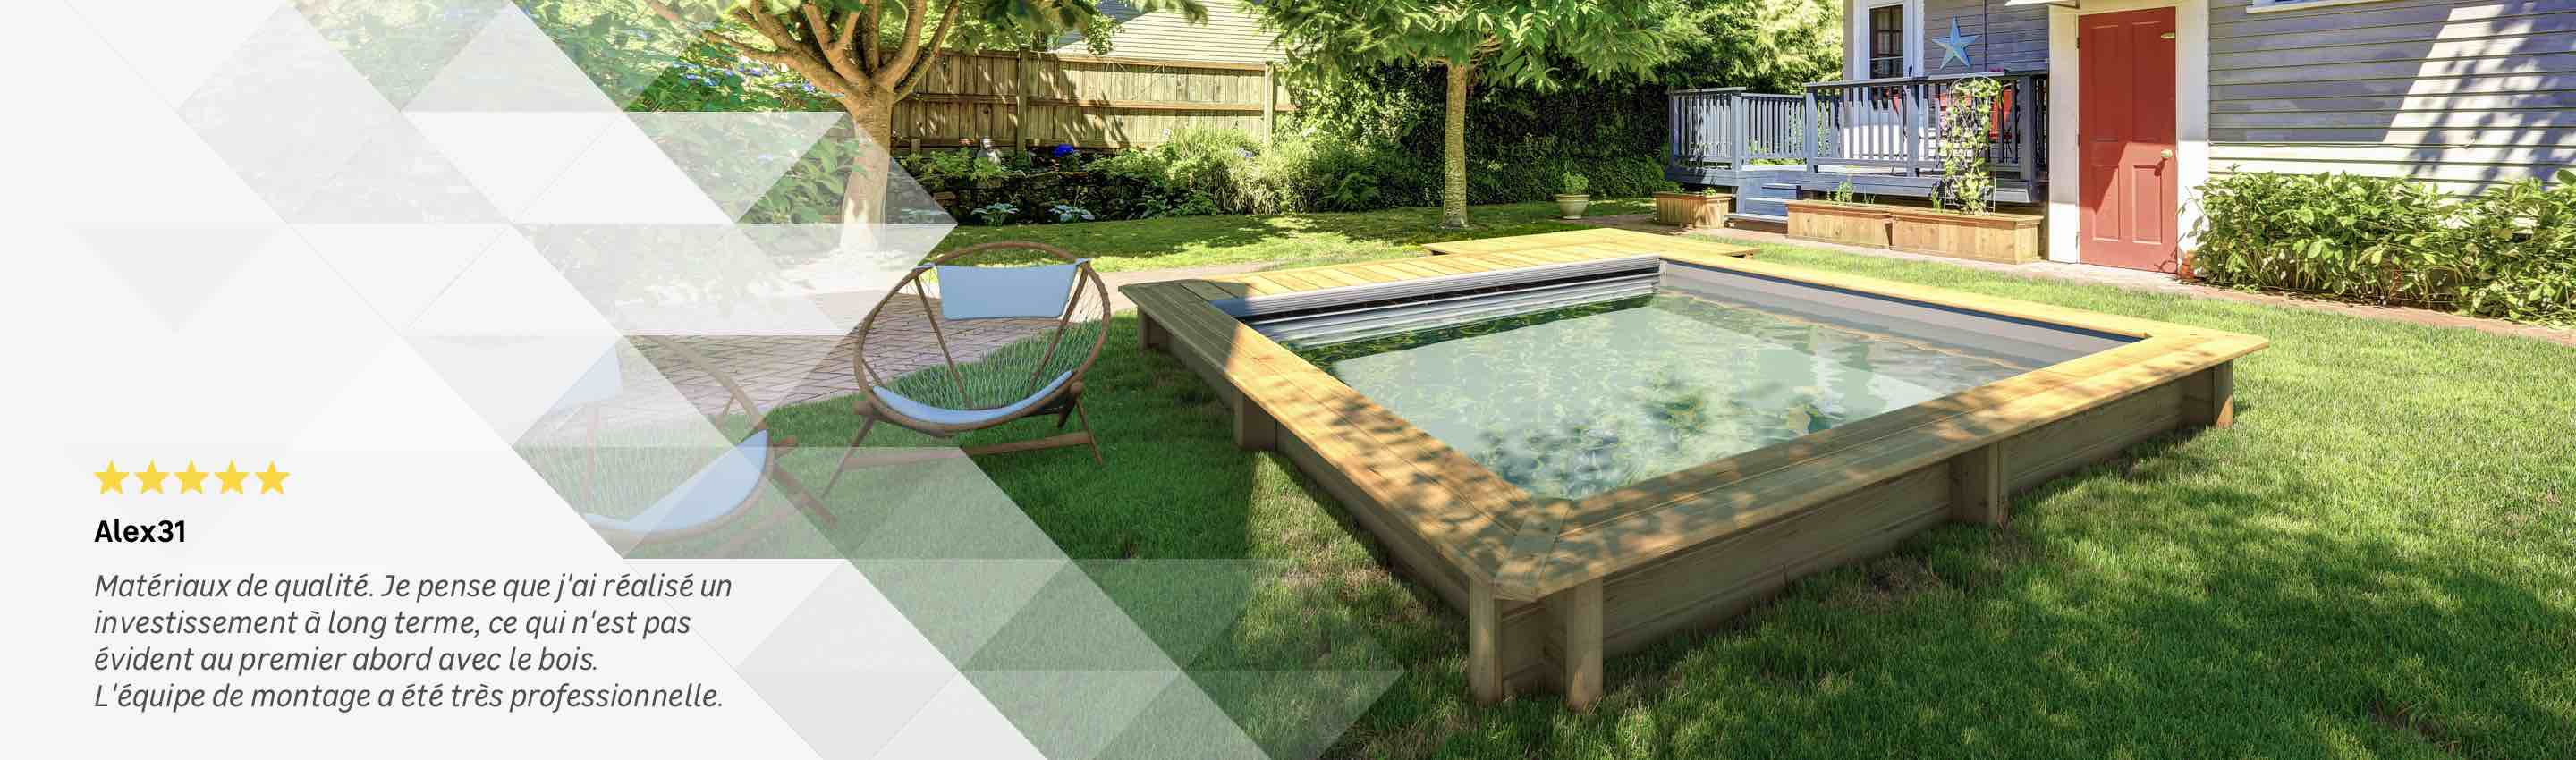 Kit piscine hors sol beton free piscine horssol for Piscine kit beton